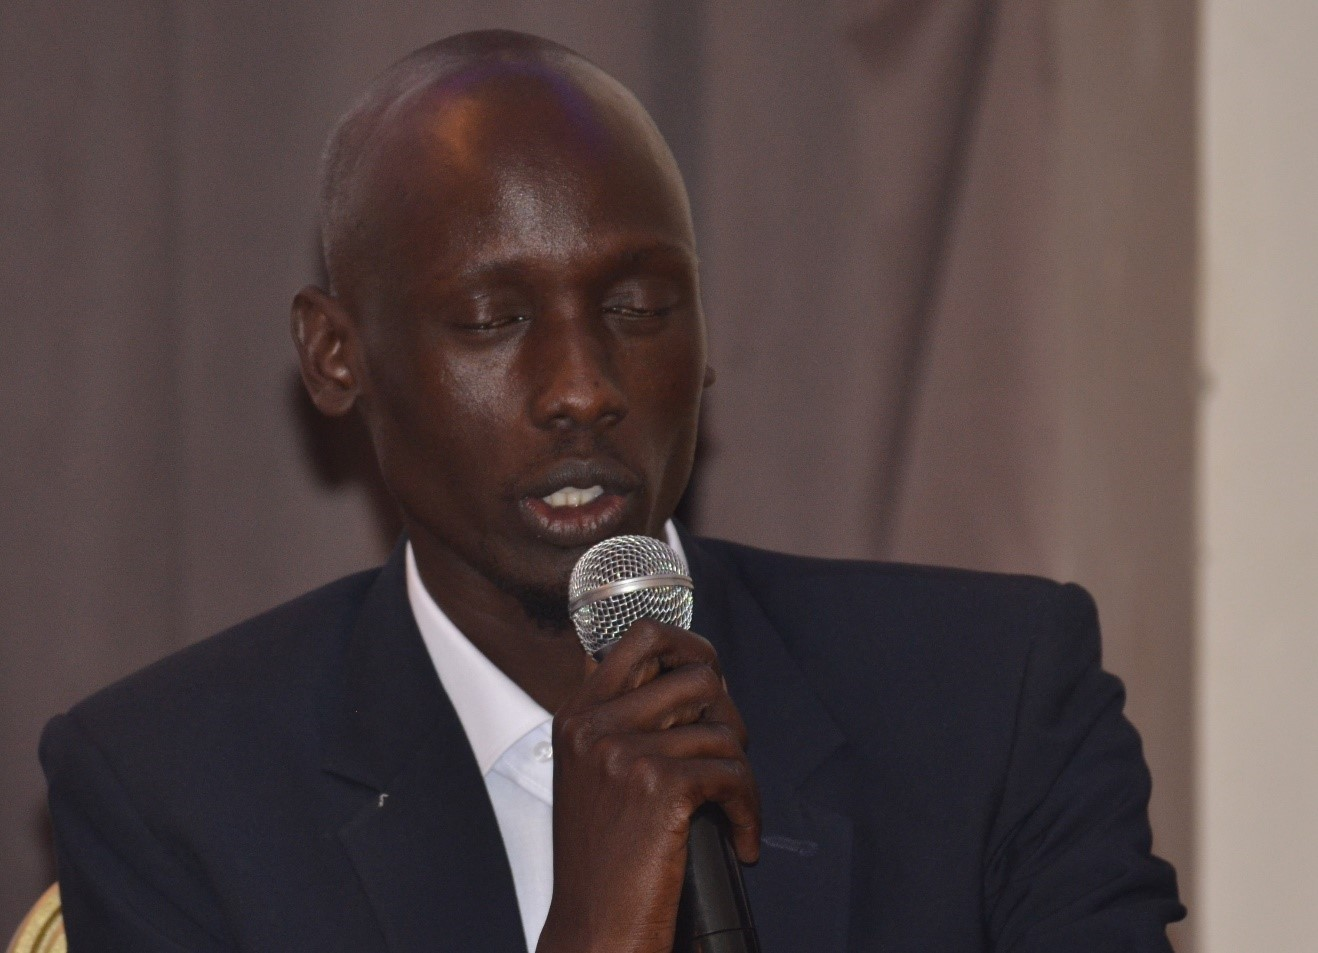 South Sudan: 'Our current regime is democratic only on paper, not in practice'